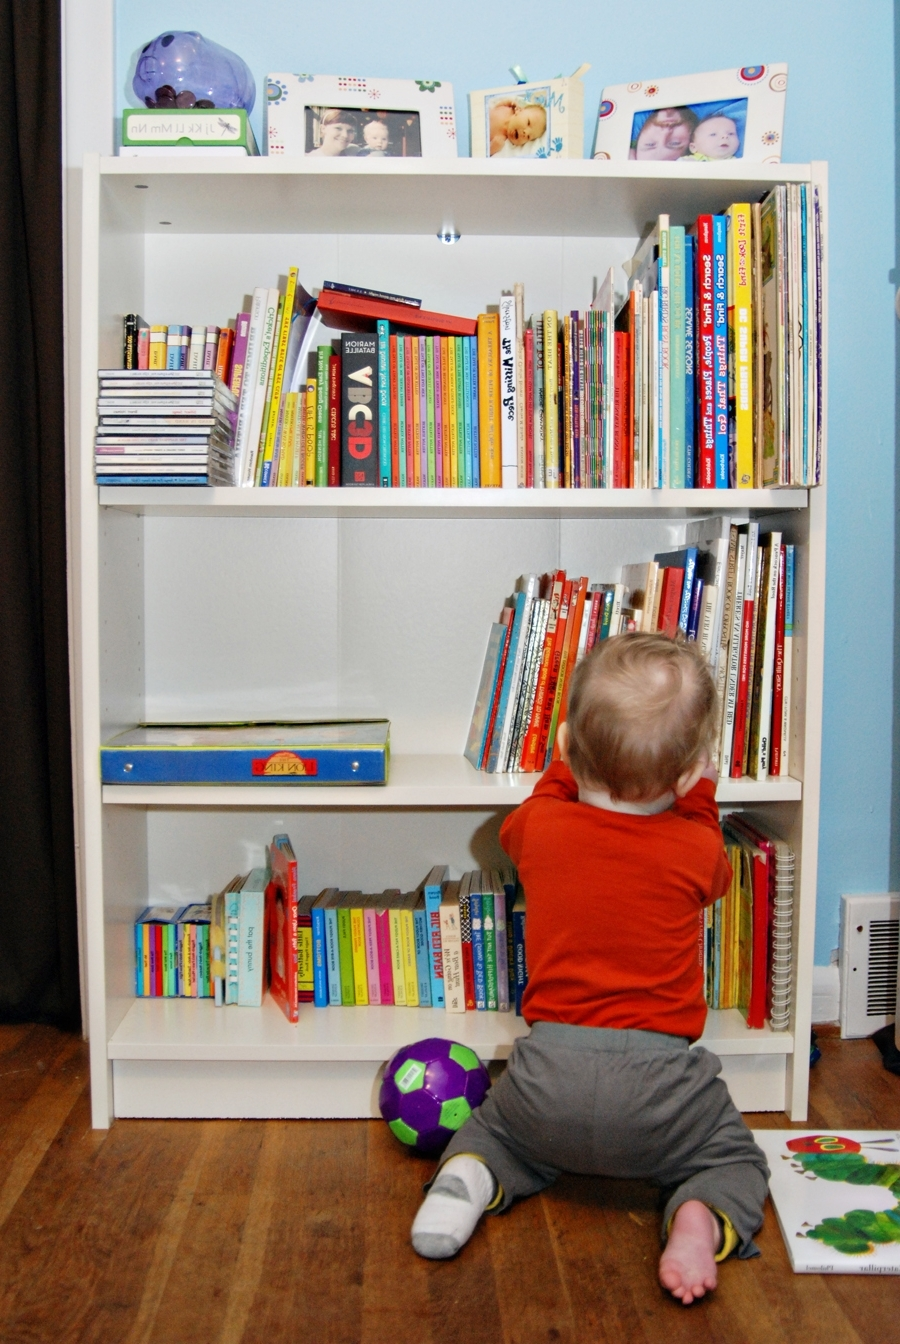 Baby Nursery Baby Room Furniture Idea Using White Bookshelf In Latest Toddler Bookcases (View 13 of 15)